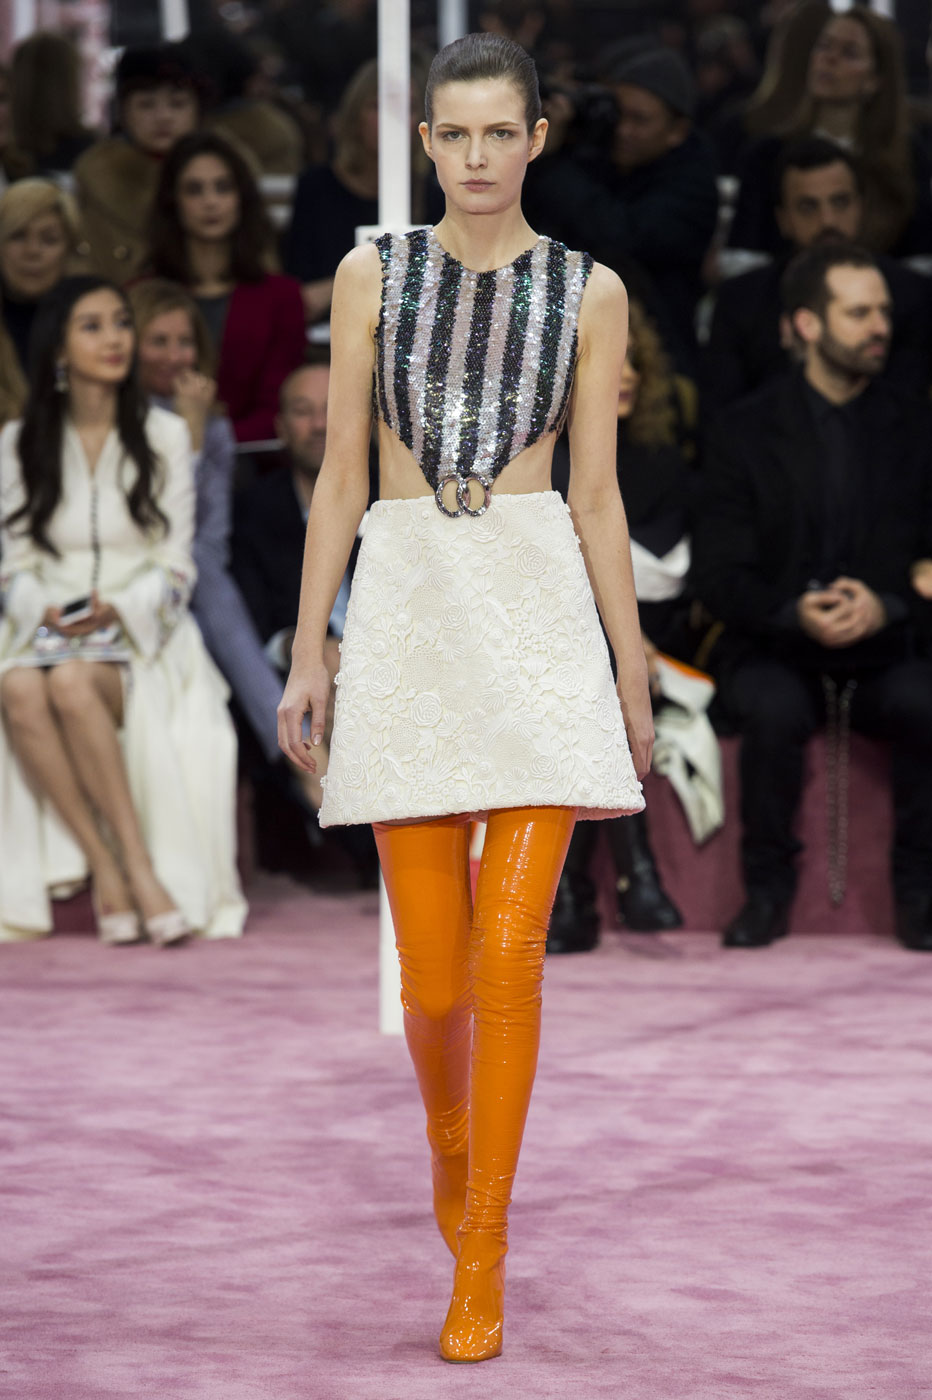 Christian-Dior-fashion-runway-show-haute-couture-paris-spring-summer-2015-the-impression-063